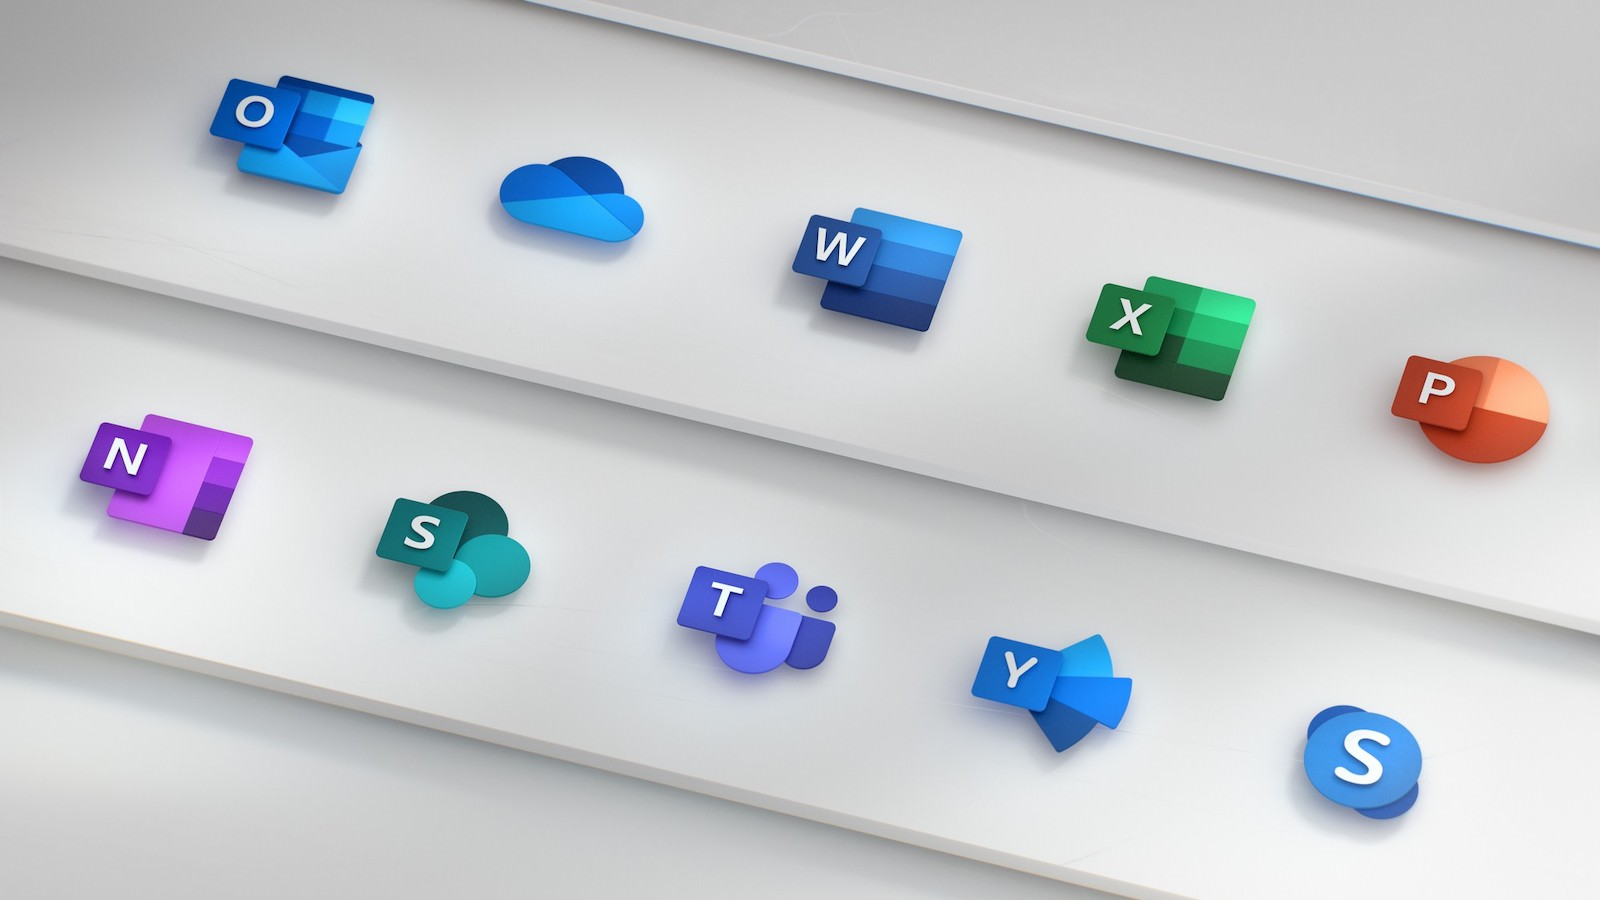 Microsoft-Office-New-Icons.jpeg